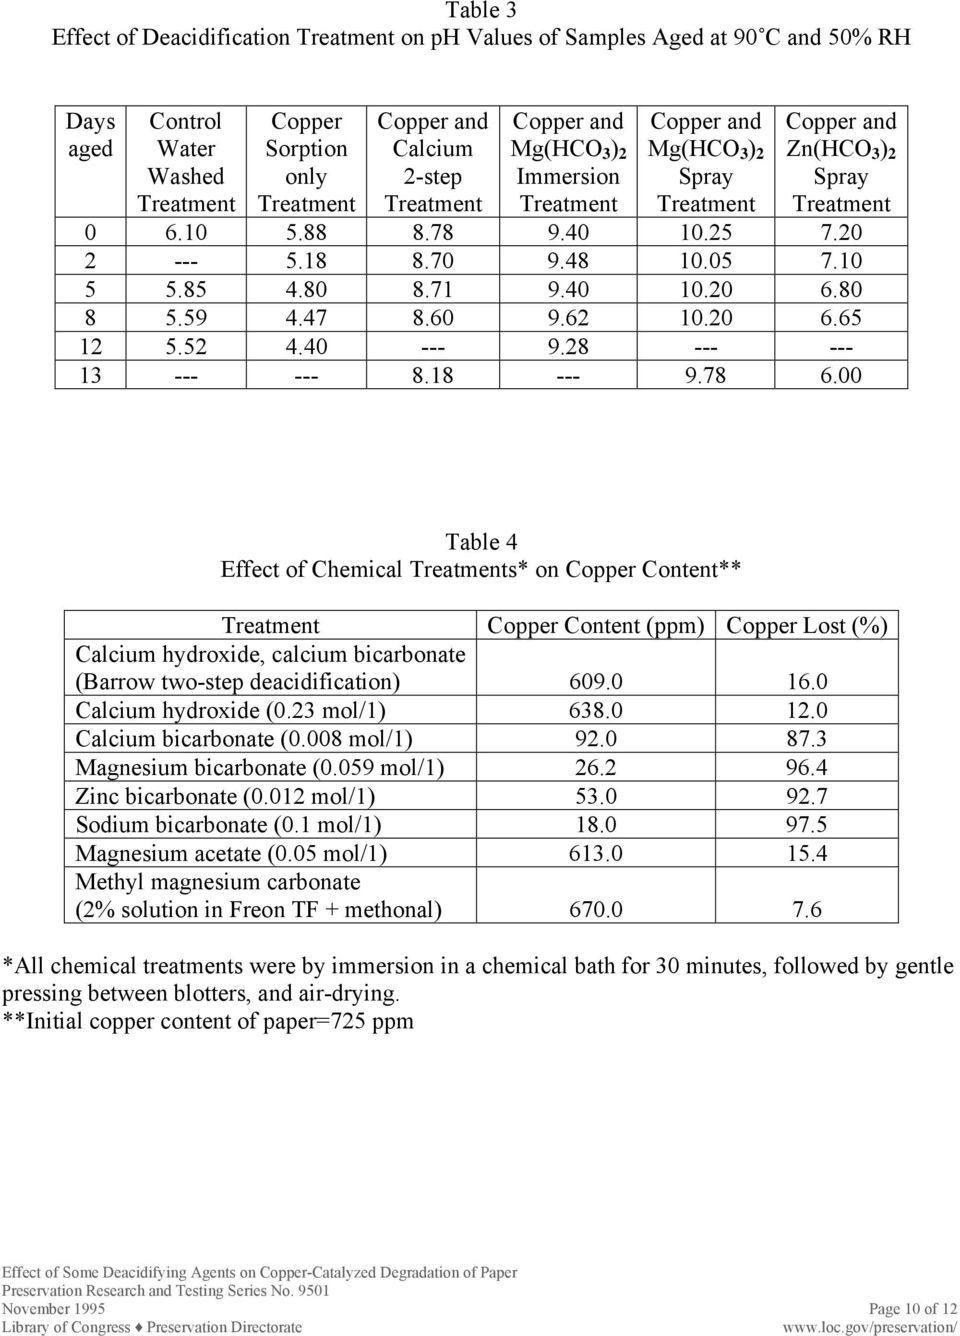 00 Table 4 Effect of Chemical s* on Copper Content** Copper Content (ppm) Copper Lost (%) Calcium hydroxide, calcium bicarbonate (Barrow two-step deacidification) 609.0 16.0 Calcium hydroxide (0.